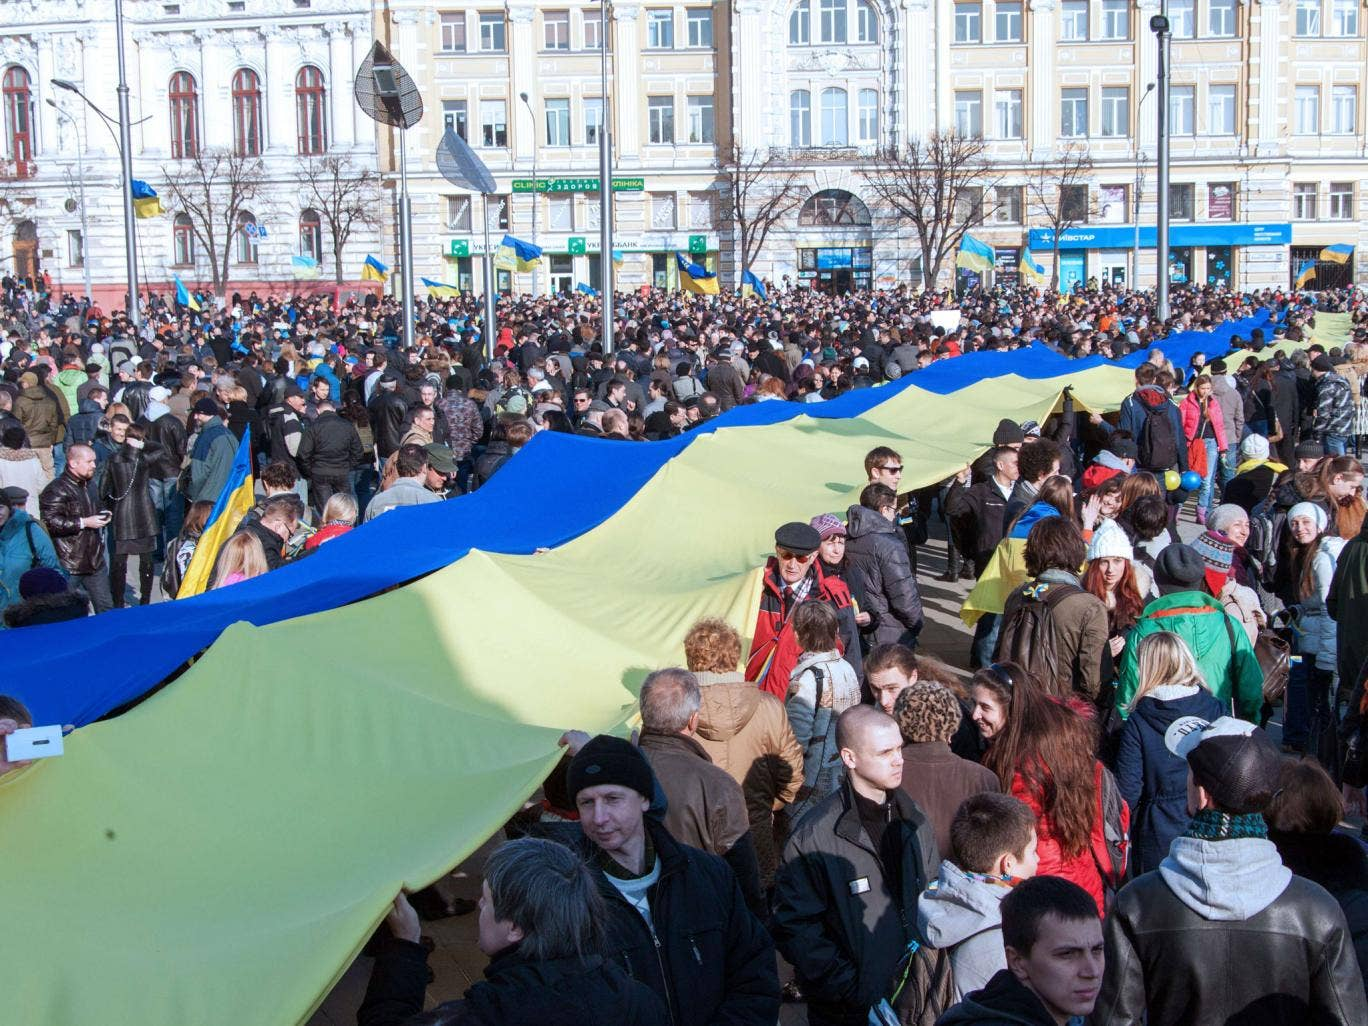 Protesters carry a giant Ukrainian flag during yesterday's anti-war rally in Kharkiv, north-eastern Ukraine, as the world's leaders seek a solution to the stand-off